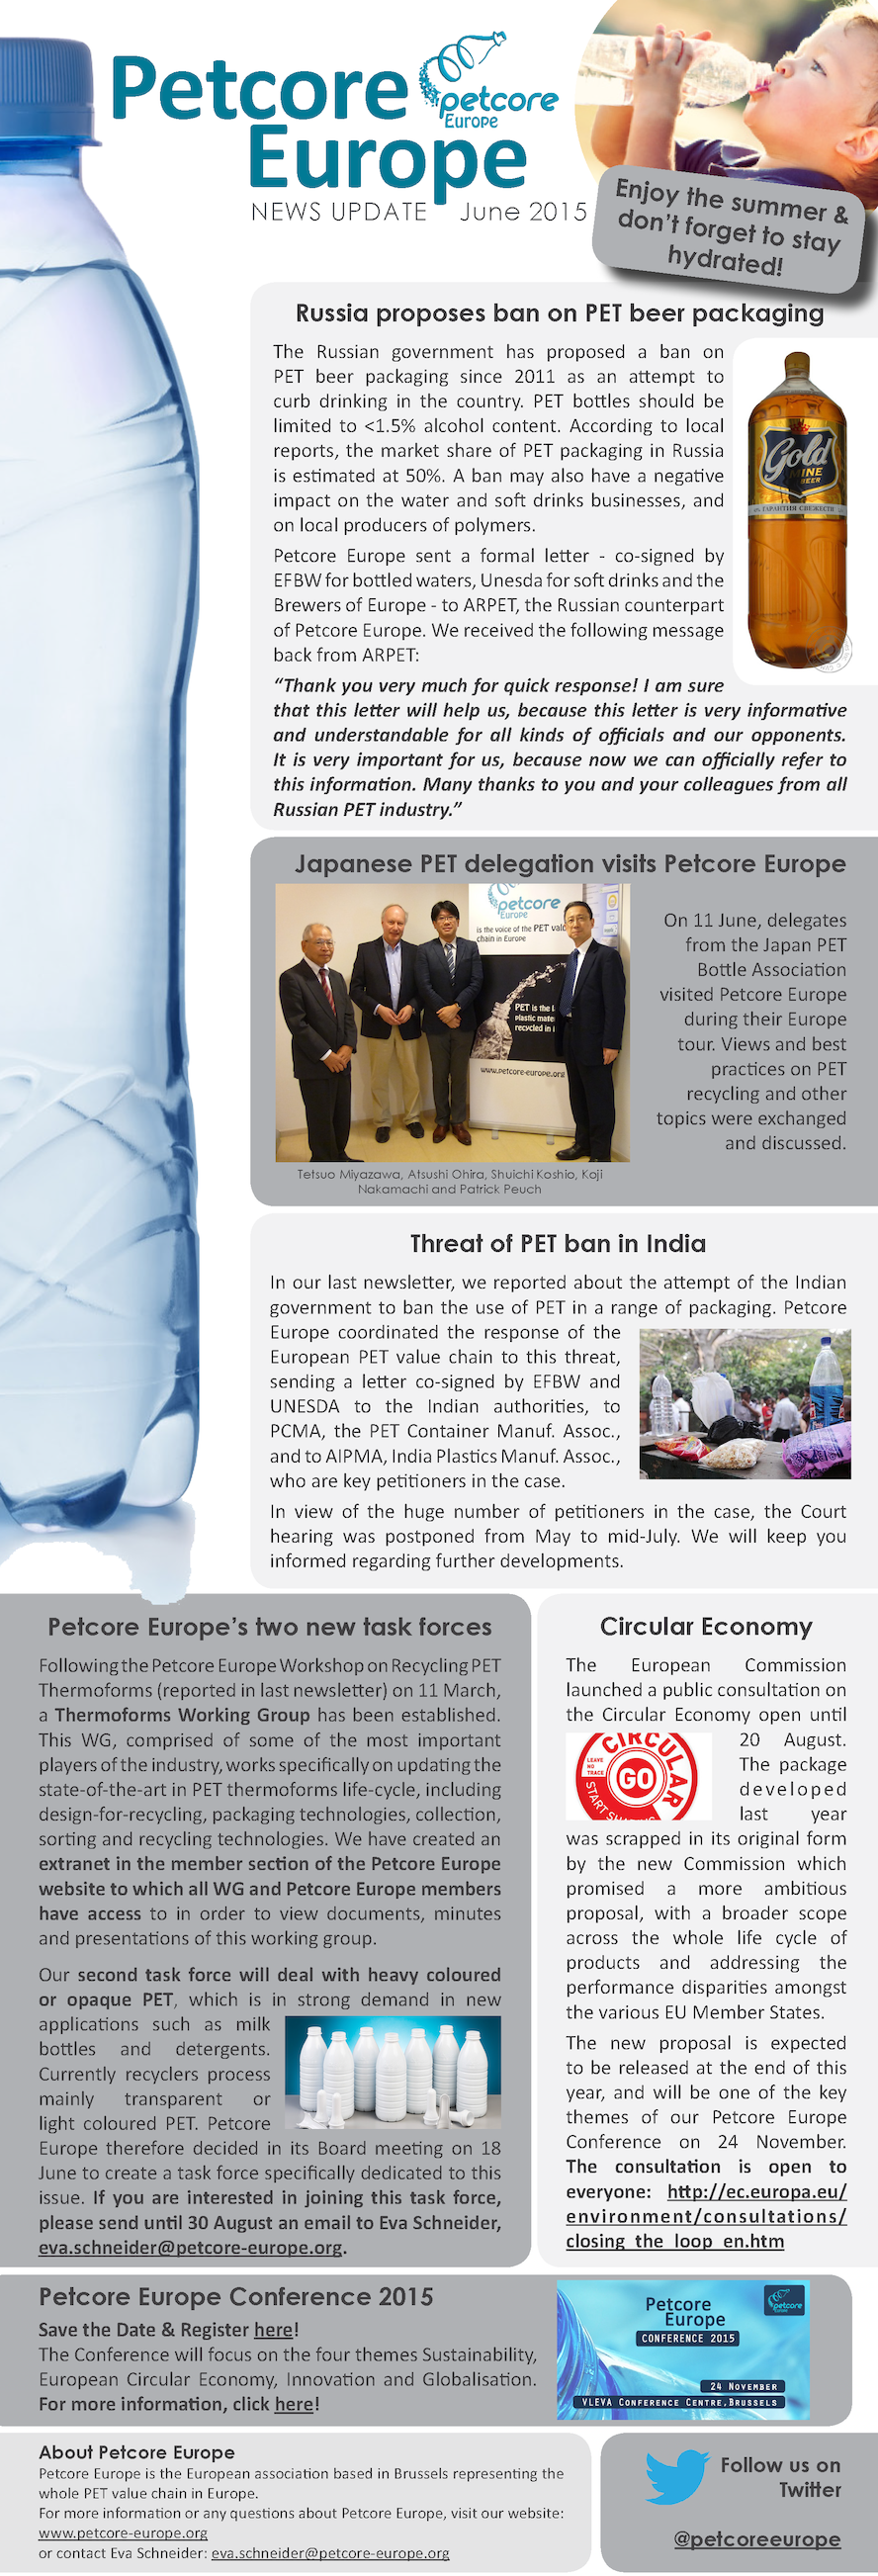 Petcore Europe News Update - June 2015